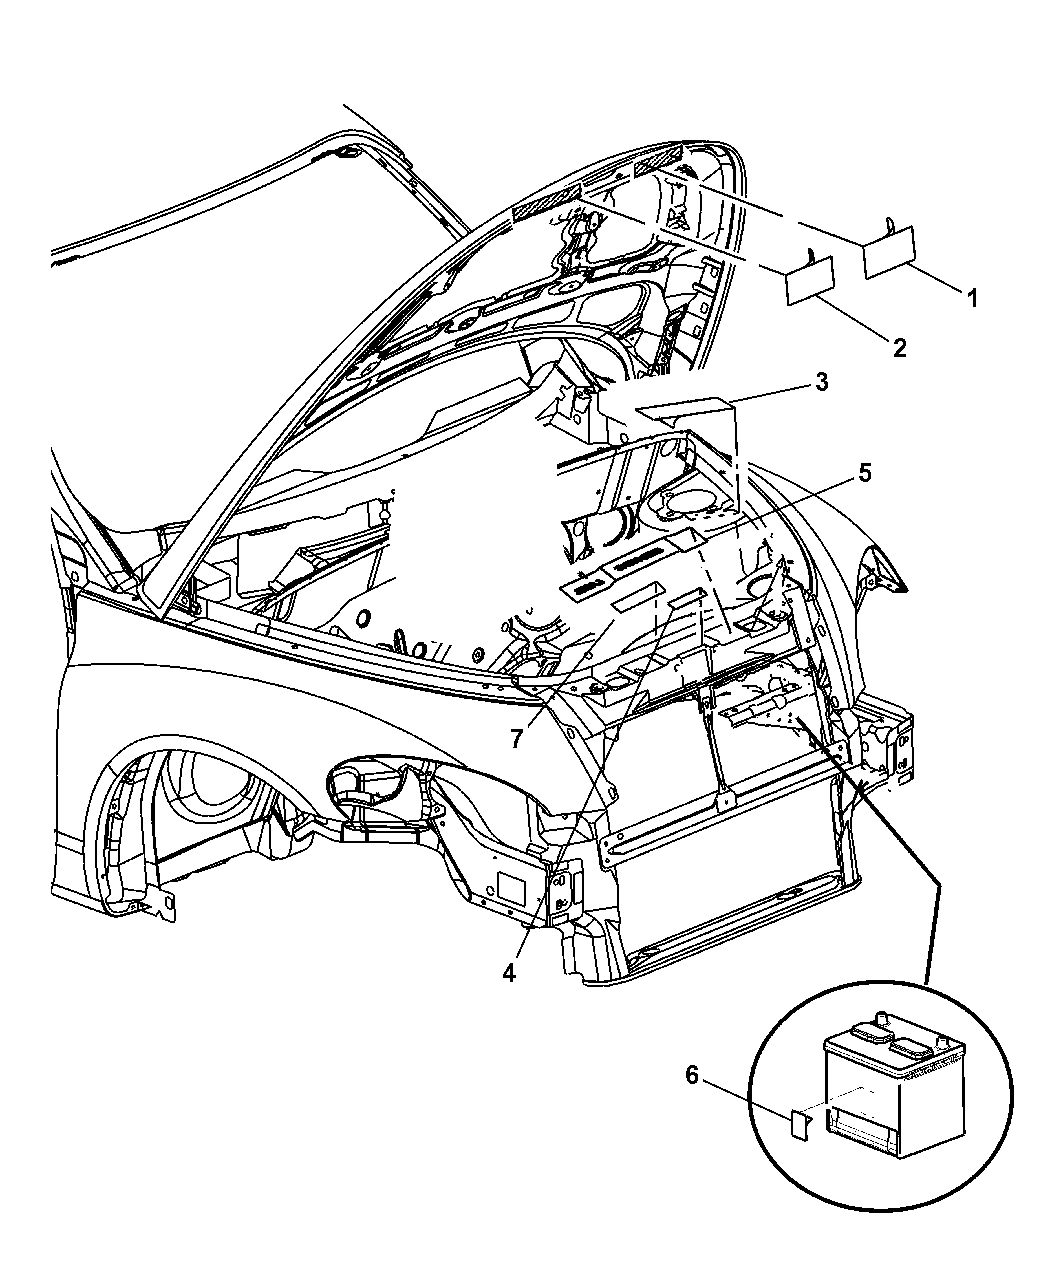 2005 Convertible Pt Cruiser Engine Diagram Wiring Library 06 Chrysler Compartment